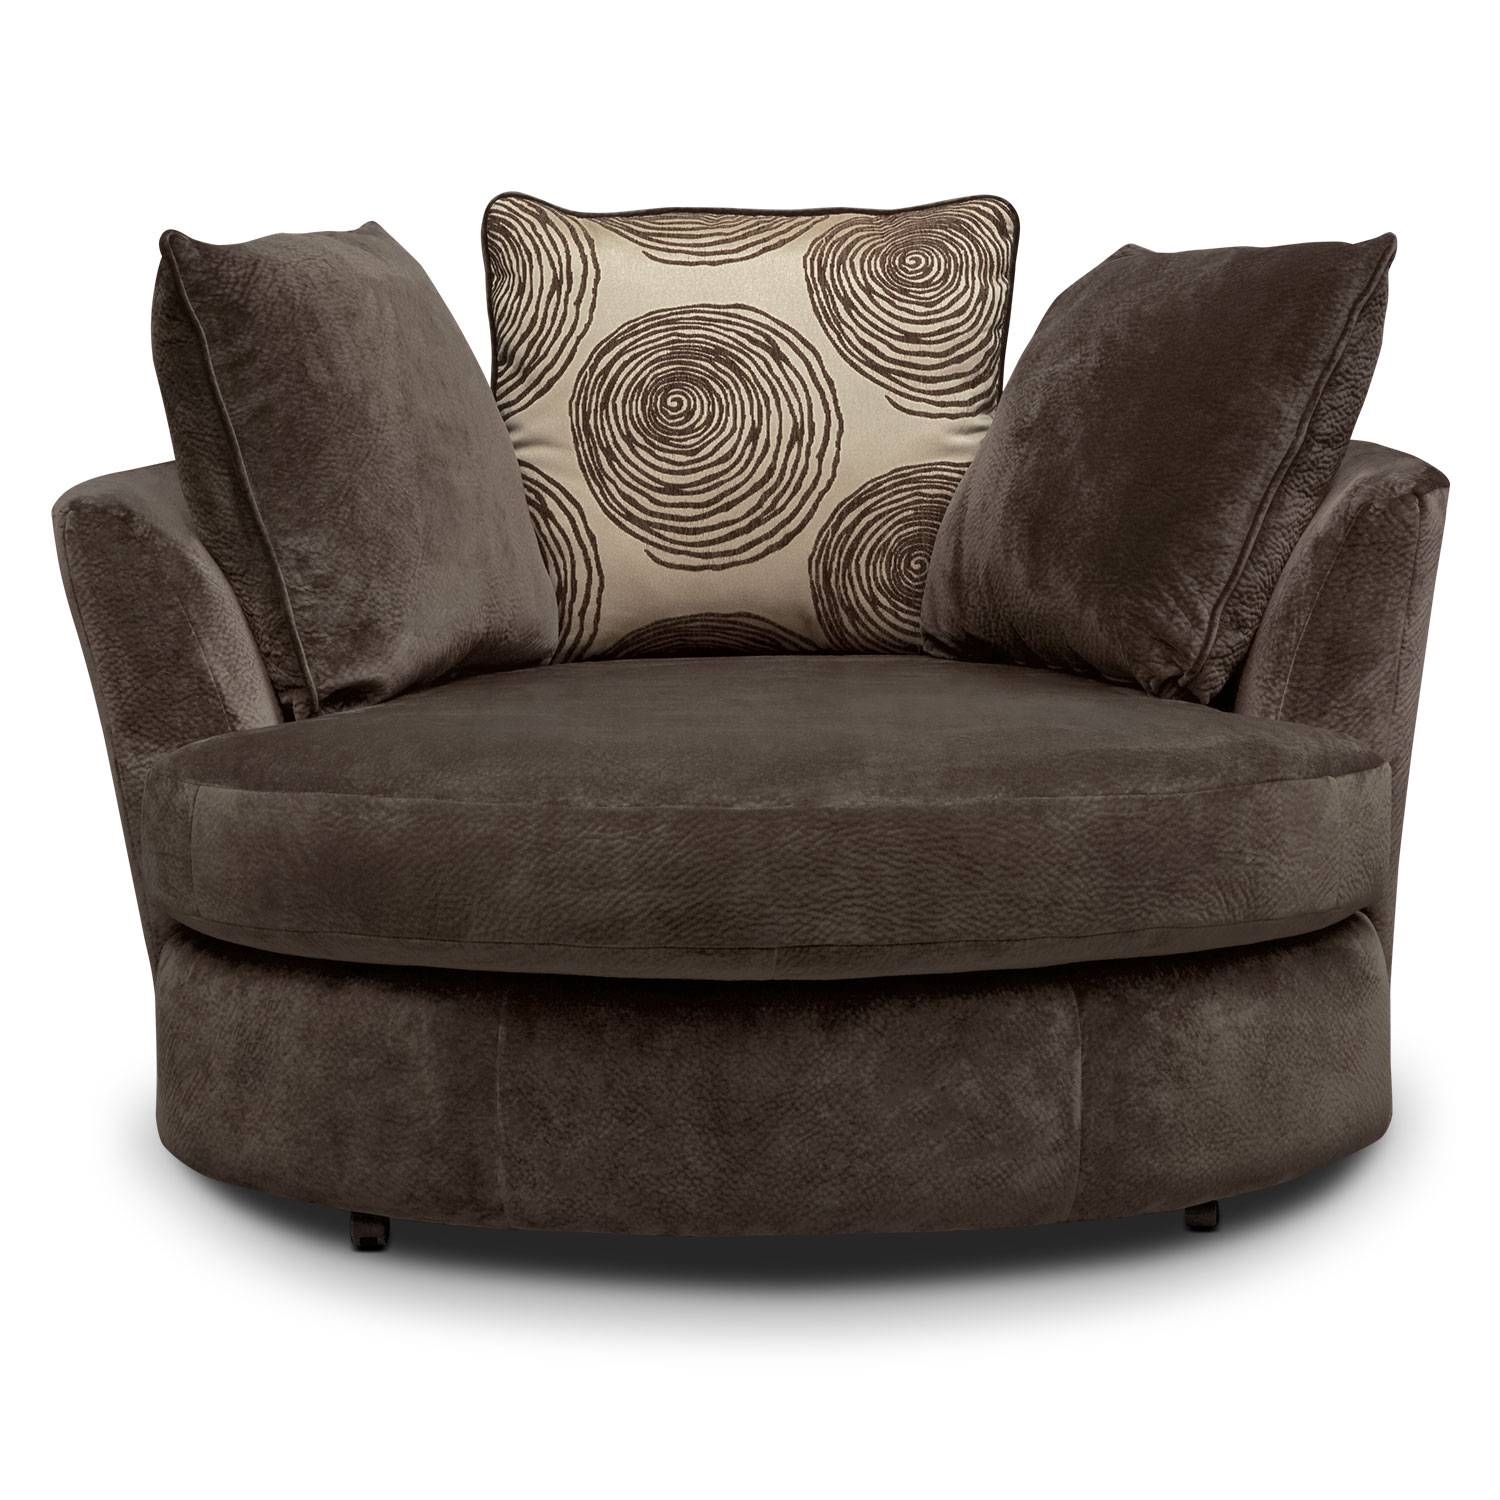 Cordelle Swivel Chair - Chocolate | Value City Furniture in Sofa With Swivel Chair (Image 10 of 30)